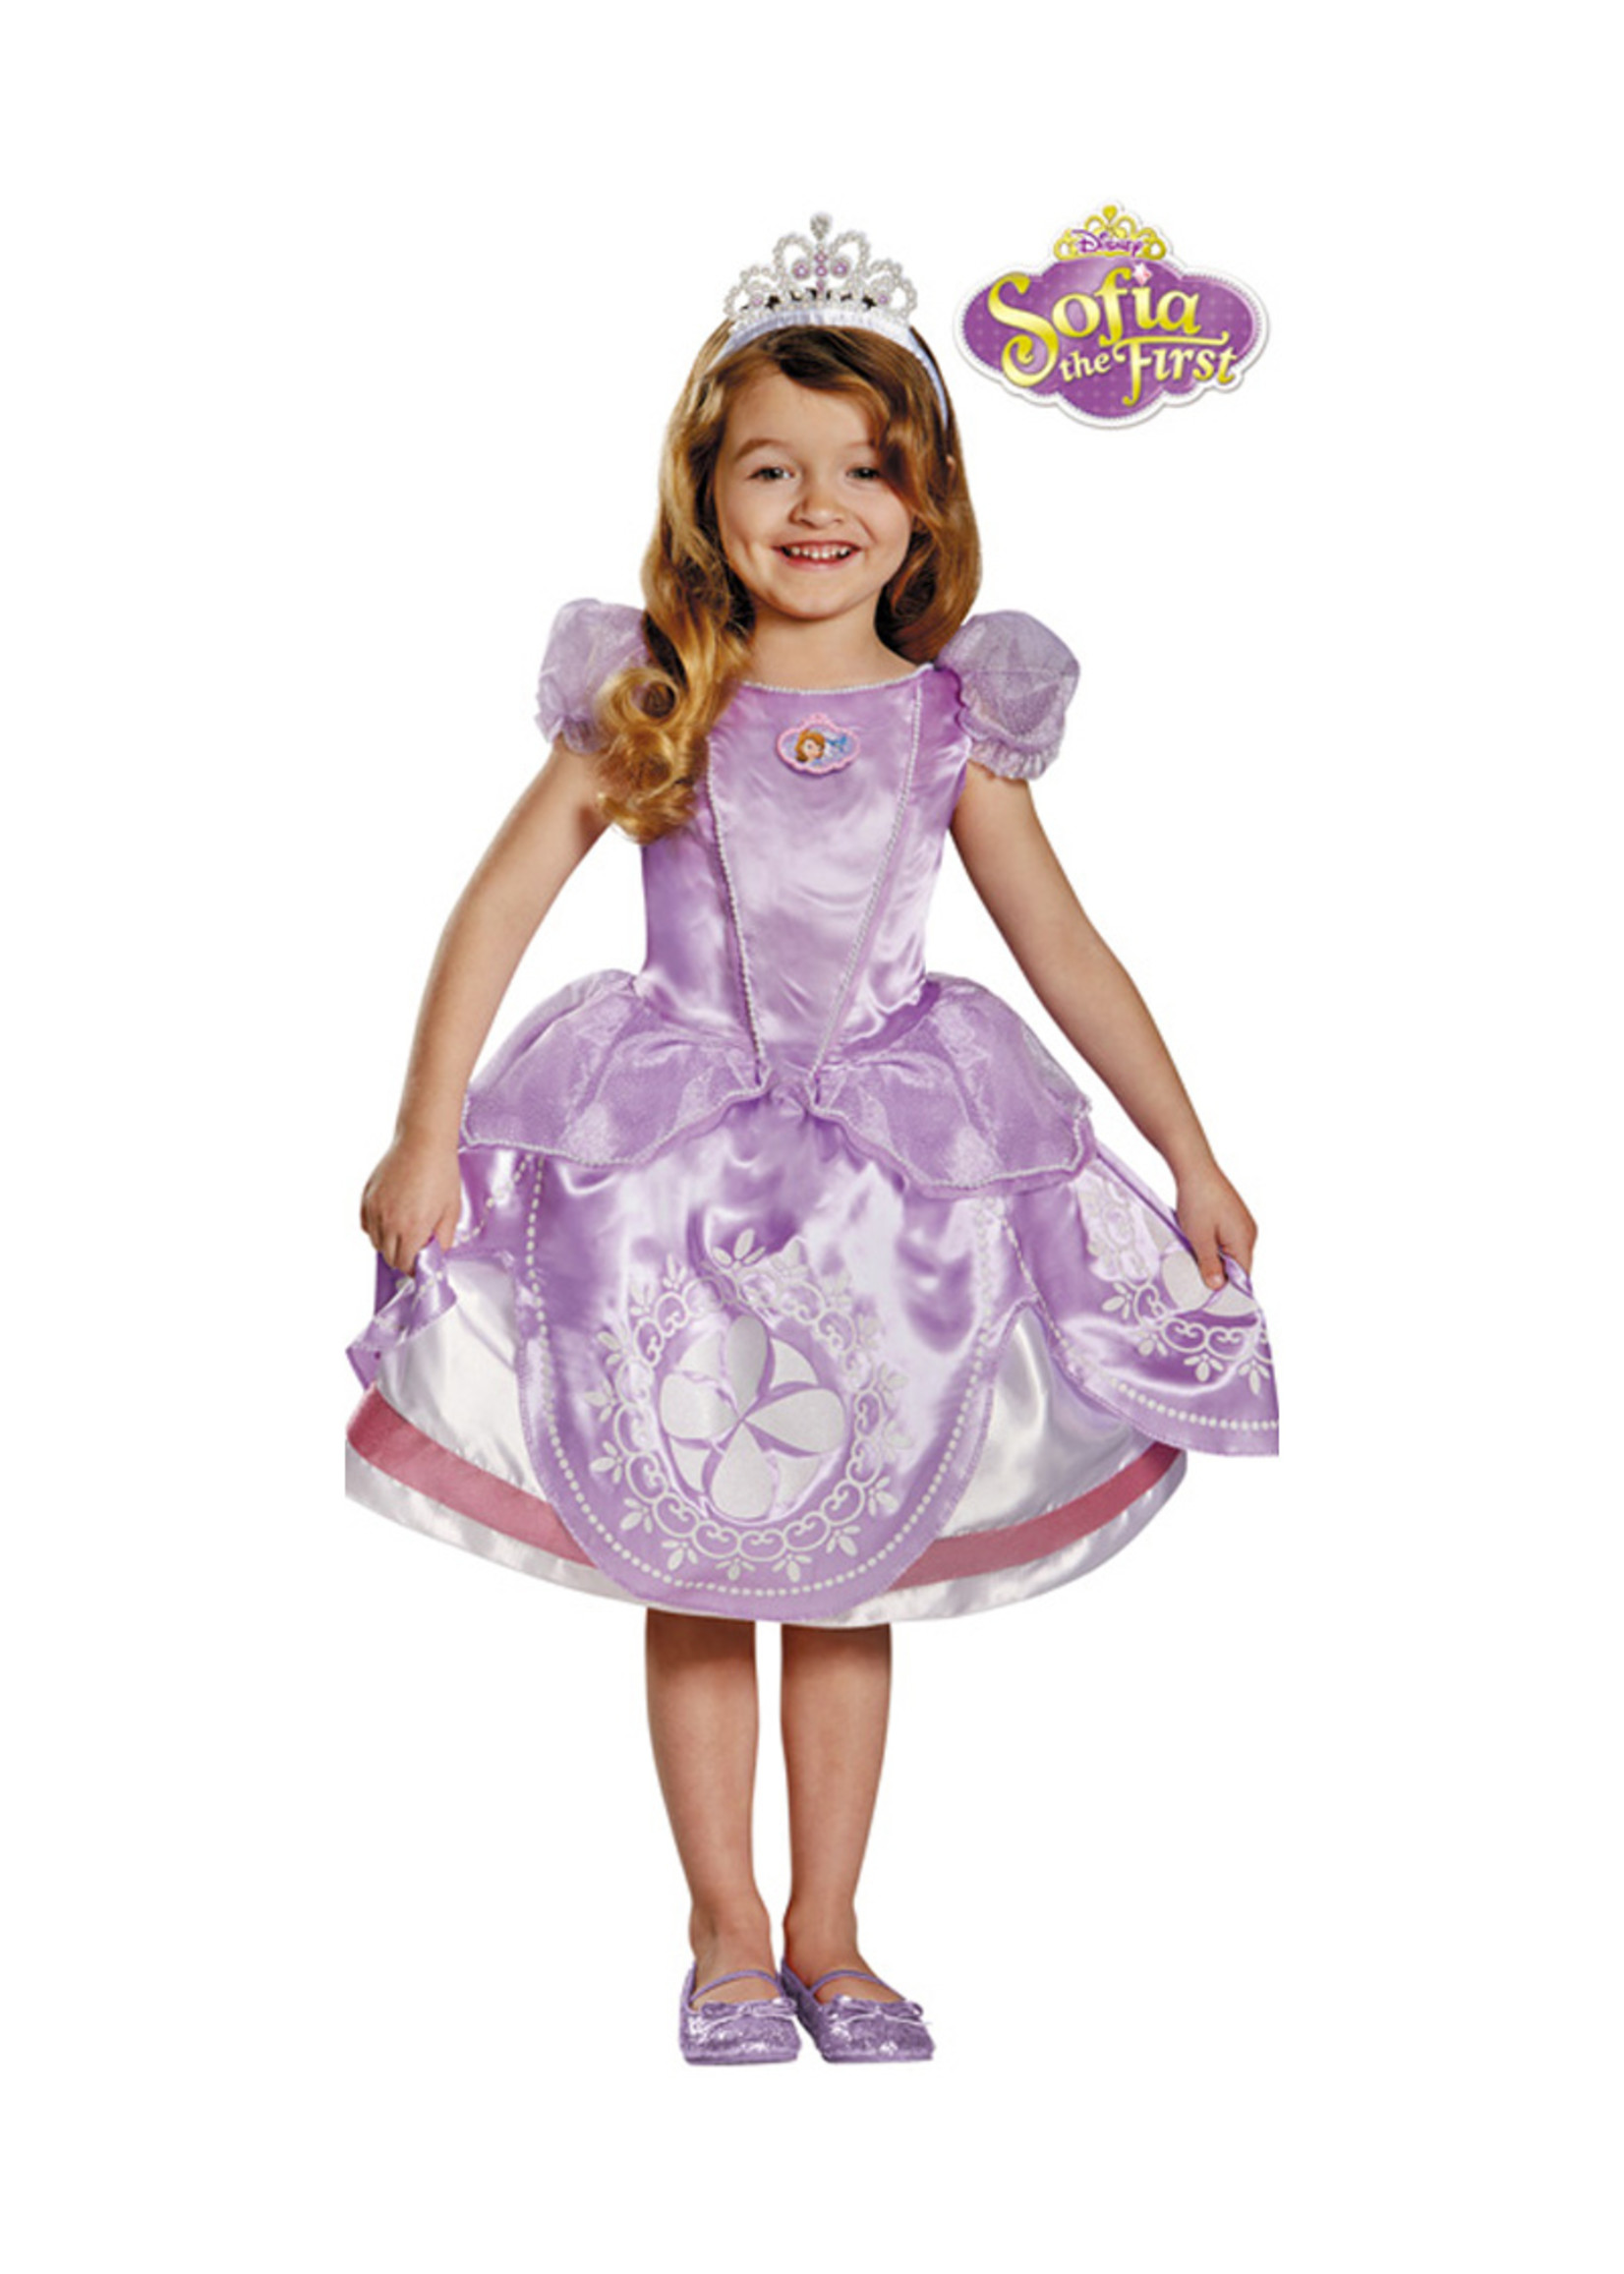 Sofia the First Deluxe Costume - Toddler